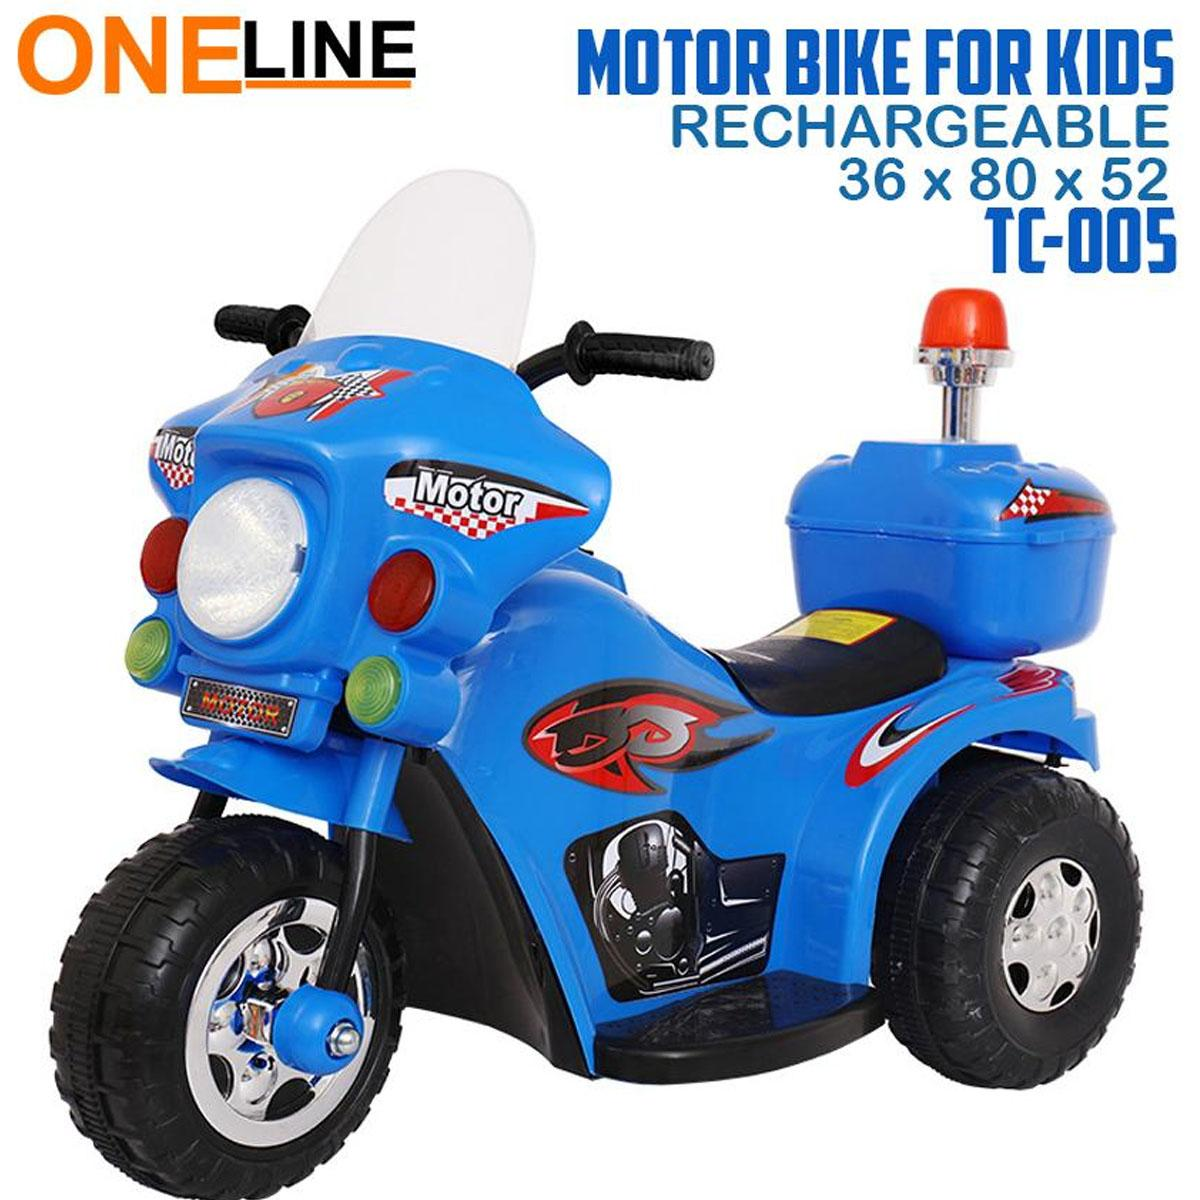 b9484d555b2 C&C TC-005 Rechargeable Motor Bike Kids Ride-on Toys Police Motorcycle